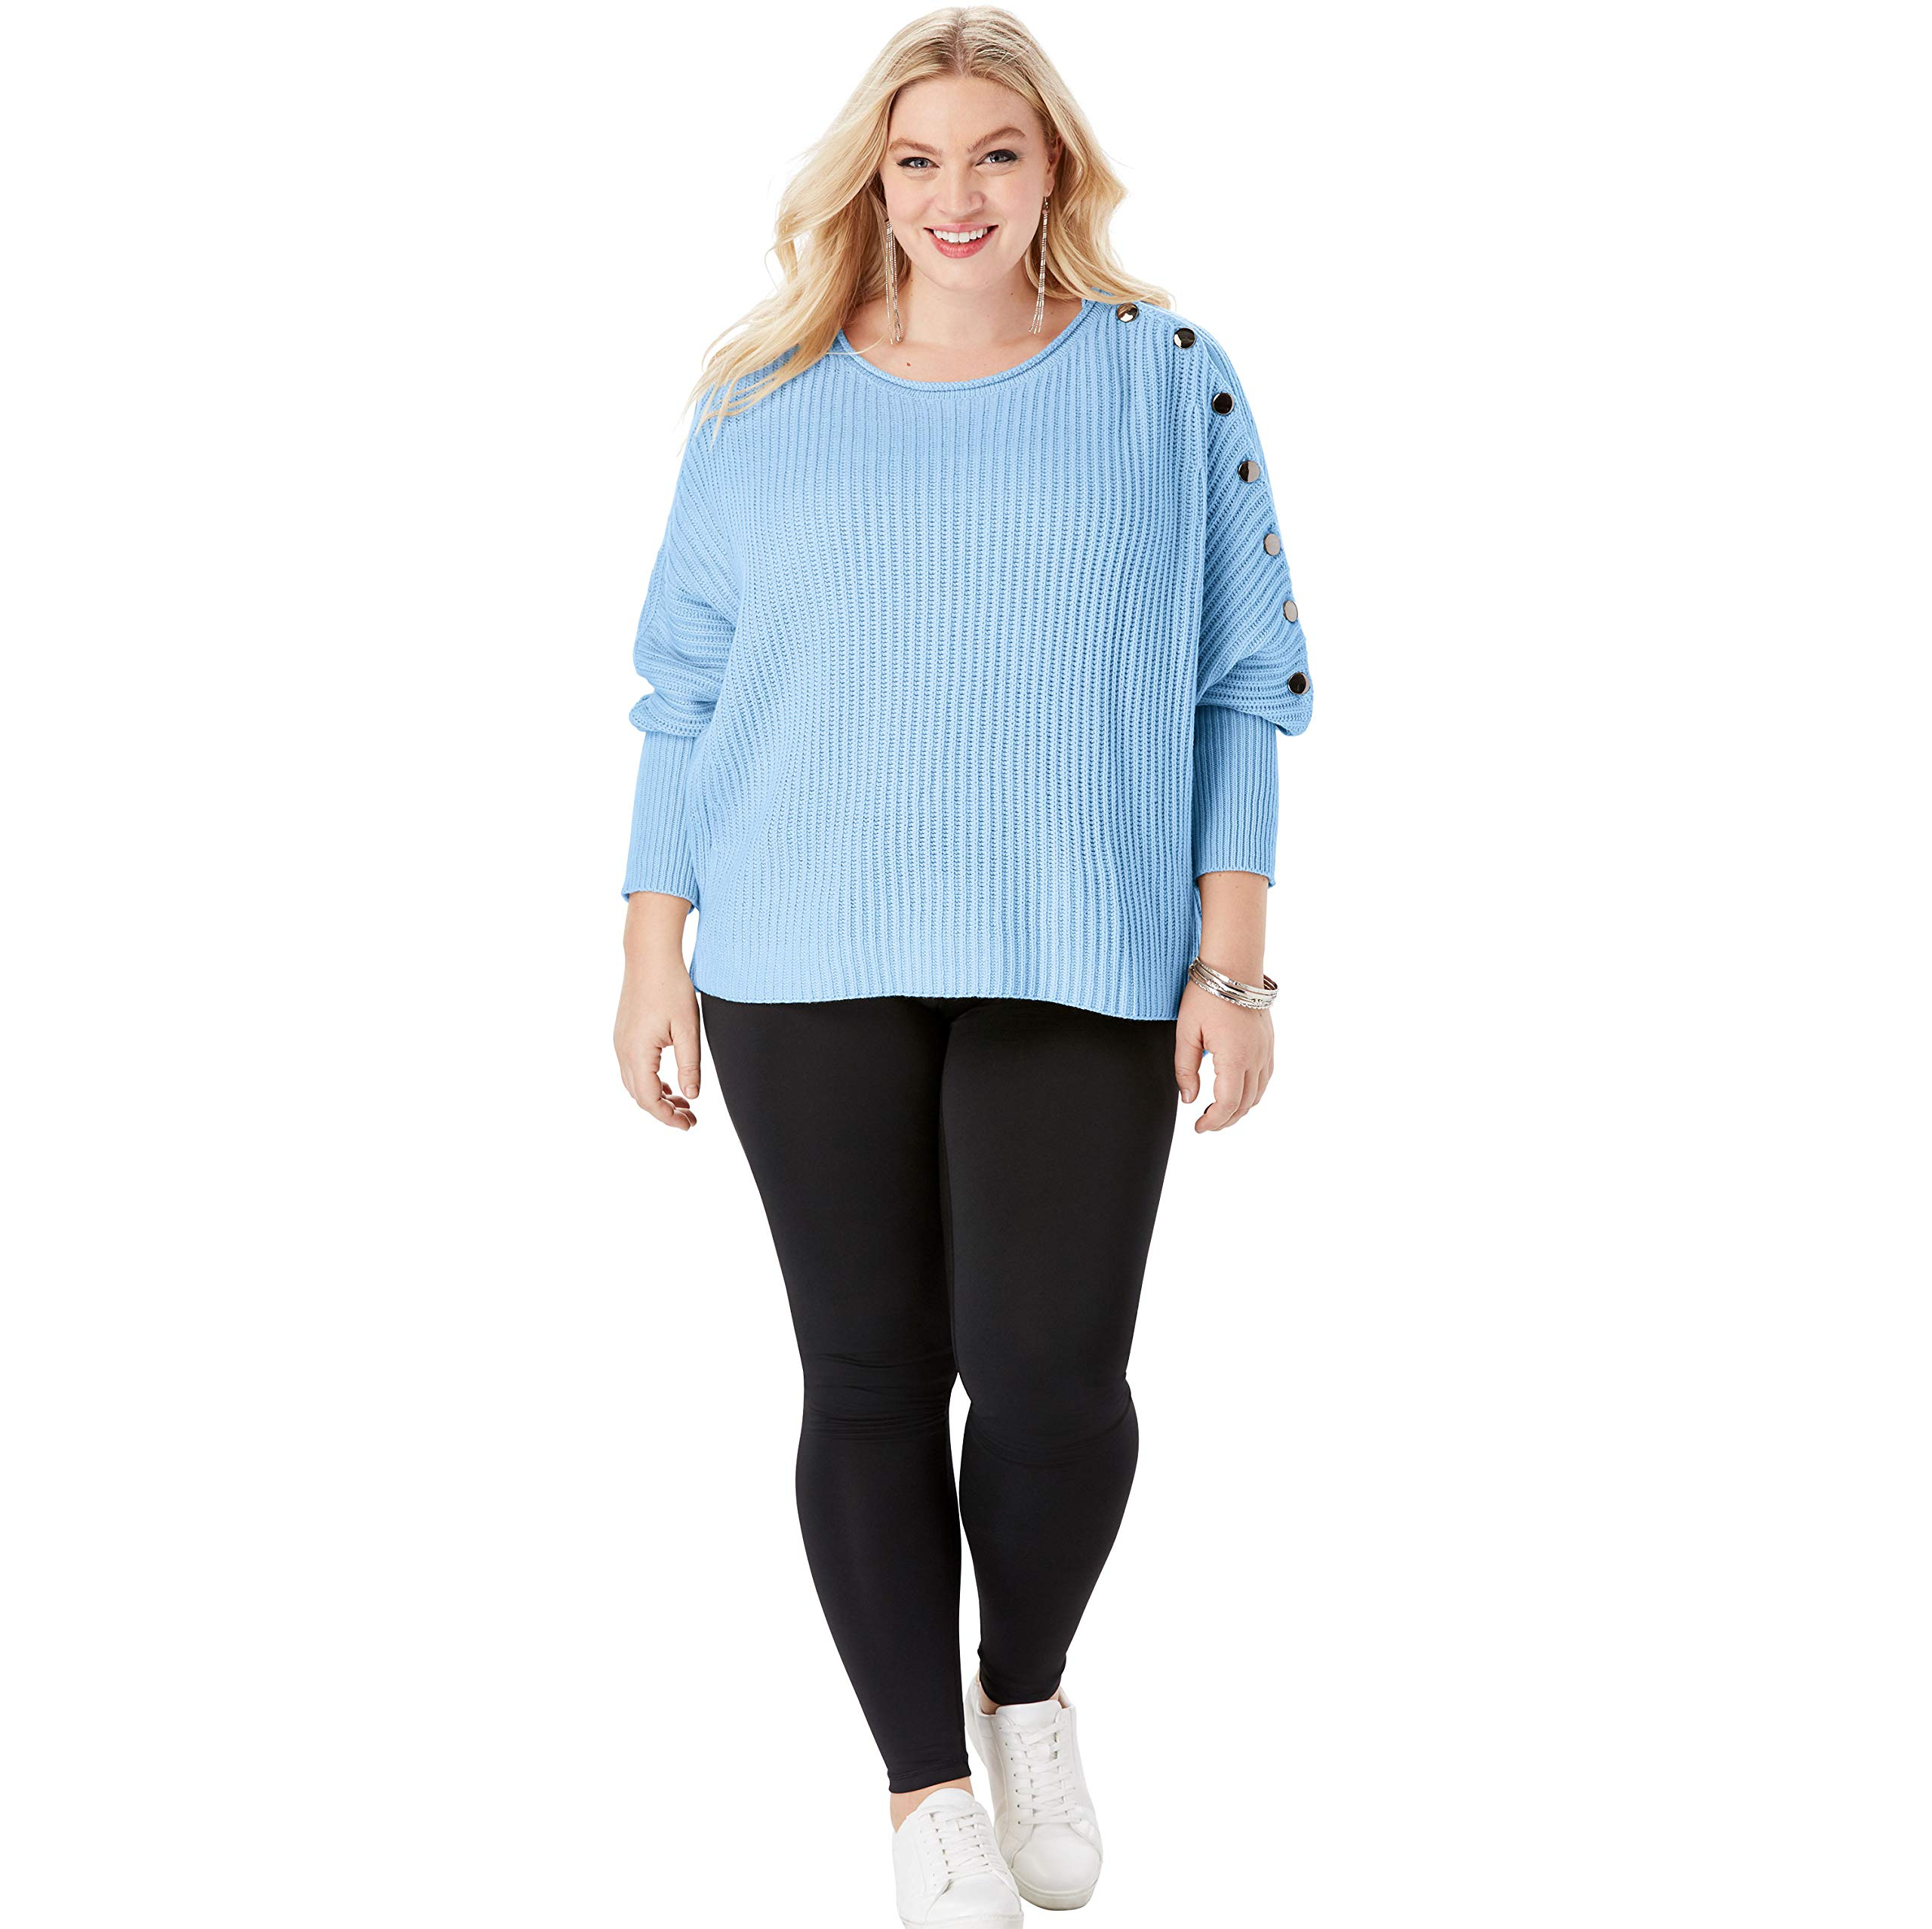 Roamans Women's Plus Size Button-Sleeve Sweater in Shaker Stitch